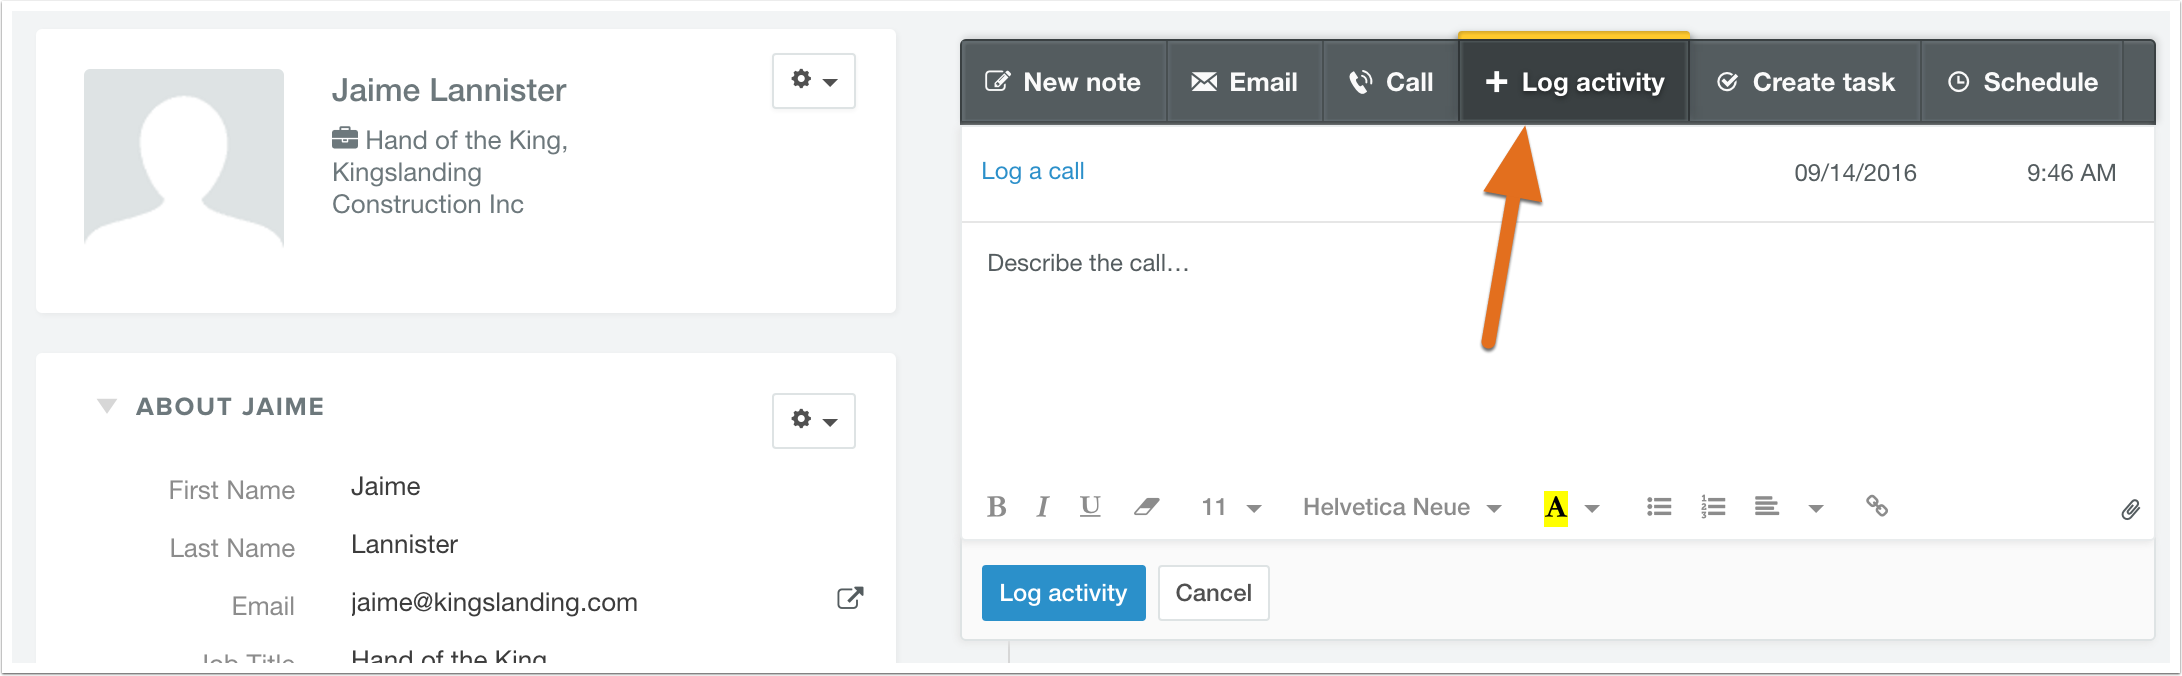 How can I manually log a call, email, or meeting on a contact record?